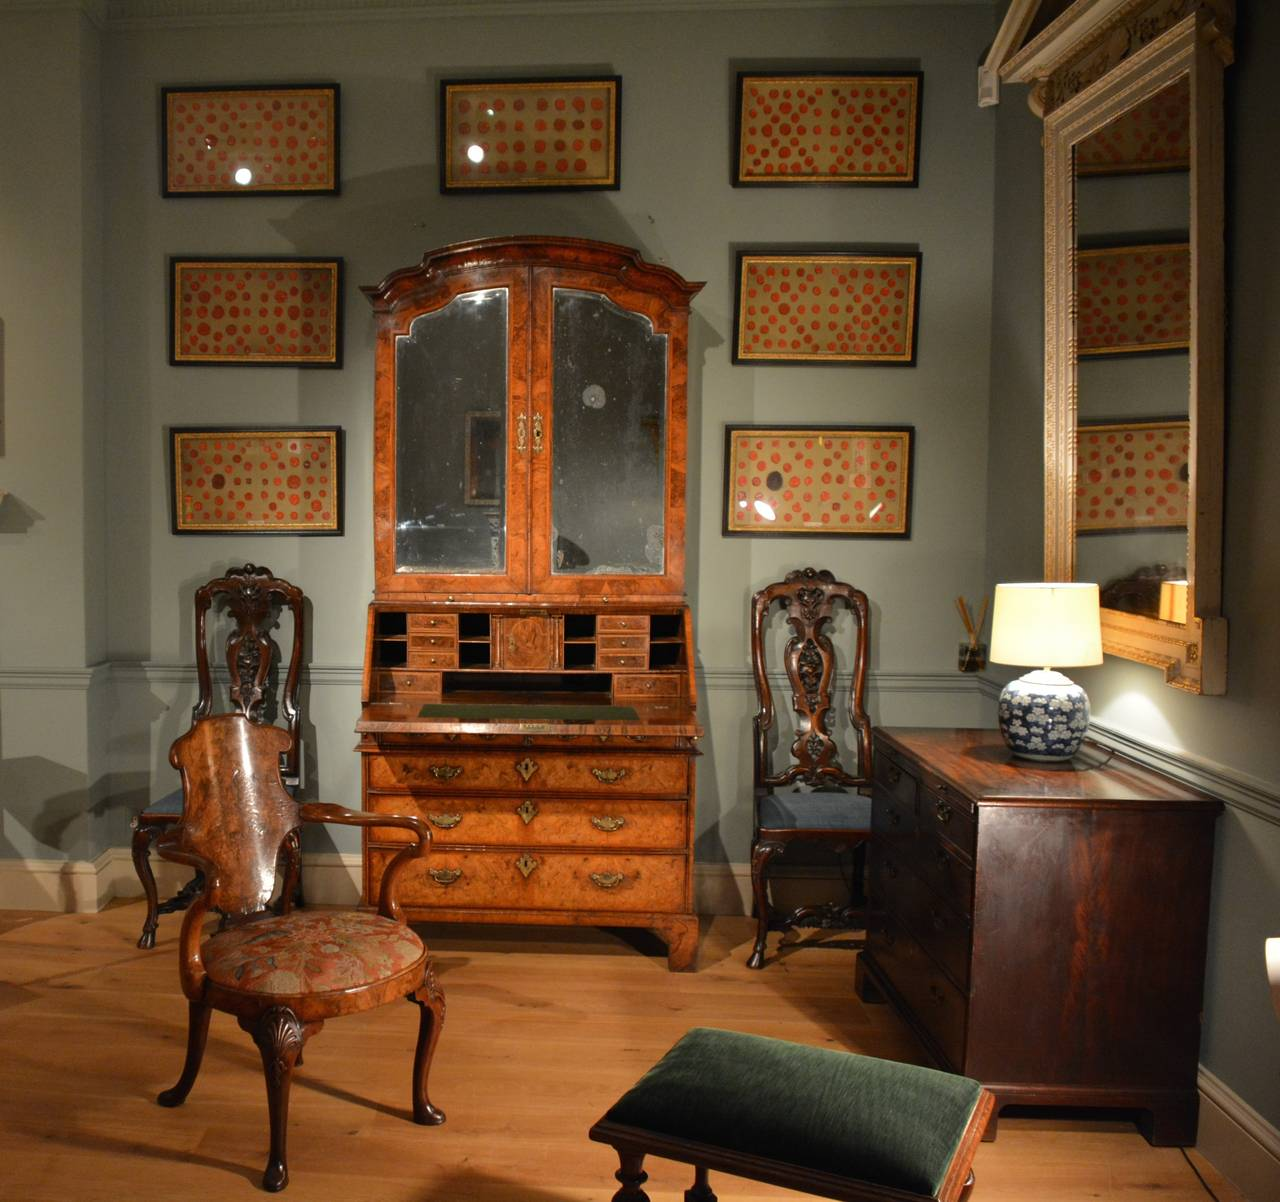 A fine quality early 18th Century bureau bookcase veneered throughout with burr walnut, having engraved brass mounts, the shaped cornice showing Chinese influence above a pair of shaped mirrored doors enclosing shelves to the upper section. The fall